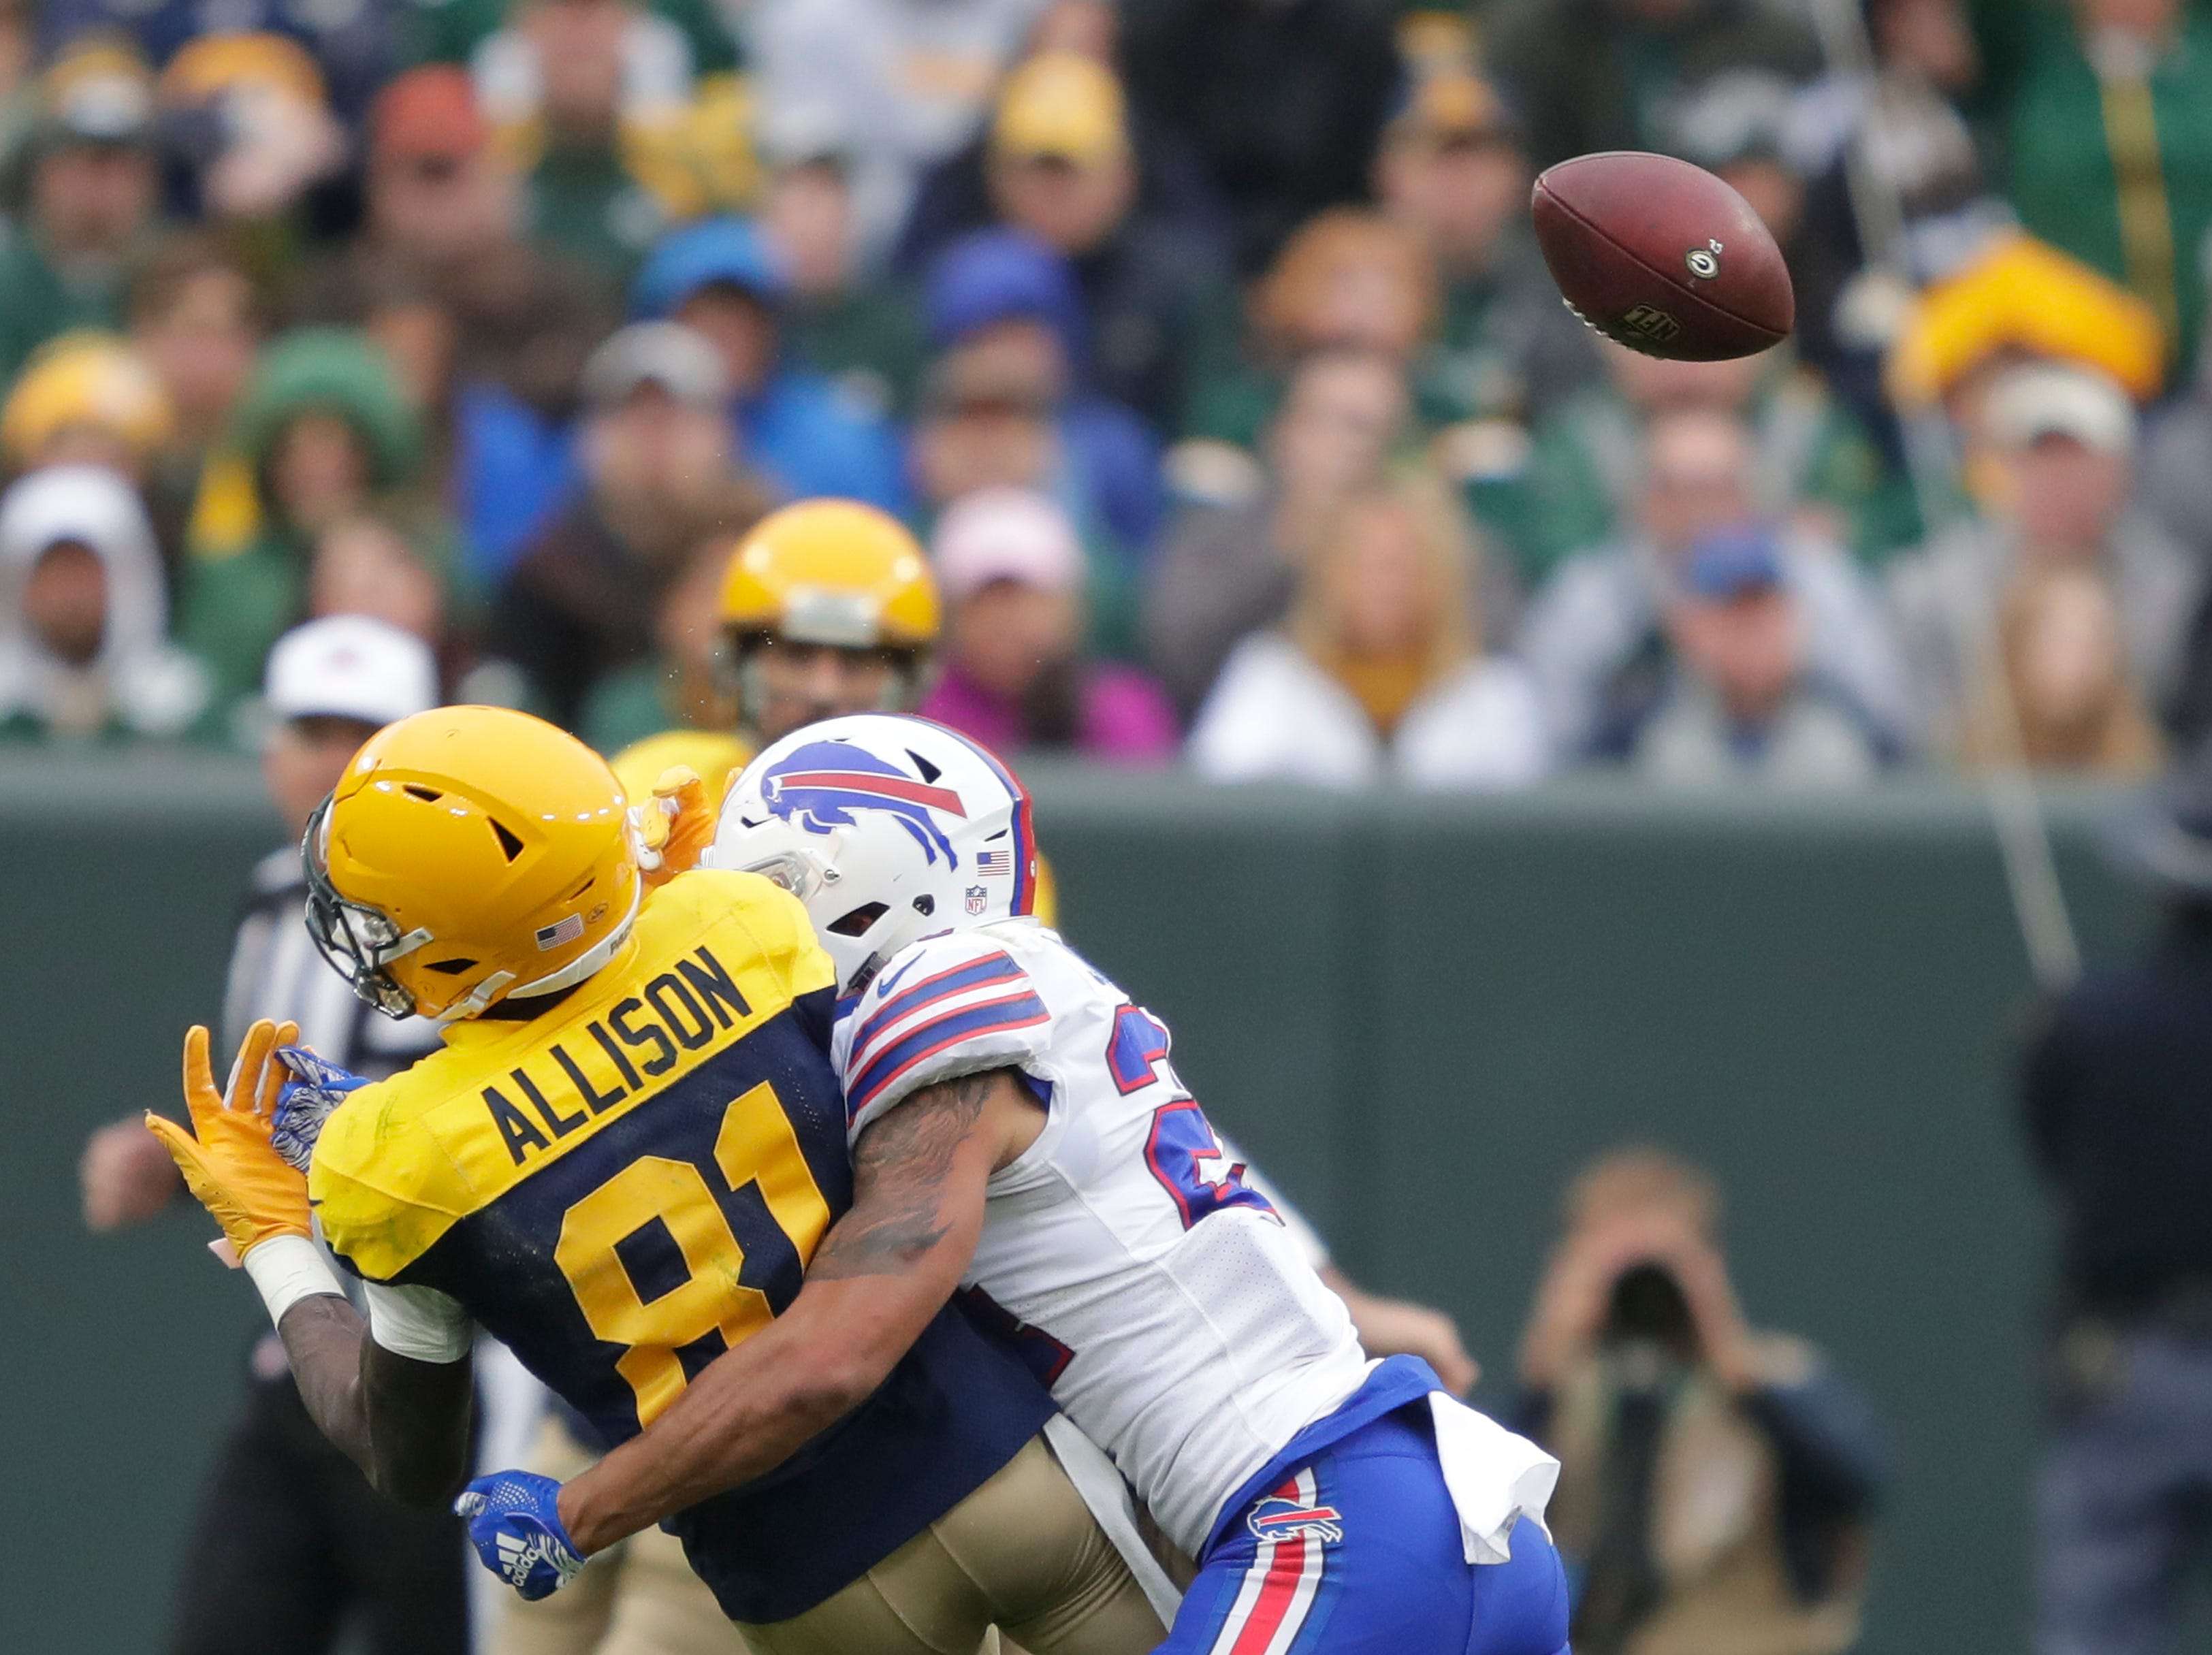 Green Bay Packers wide receiver Geronimo Allison (81) is hit by Buffalo Bills cornerback Taron Johnson (24) during their football game Sunday, Sept. 30, 2018, at Lambeau Field in Green Bay, Wis. Allison had to leave the game after the play.Dan Powers/USA TODAY NETWORK-Wisconsin